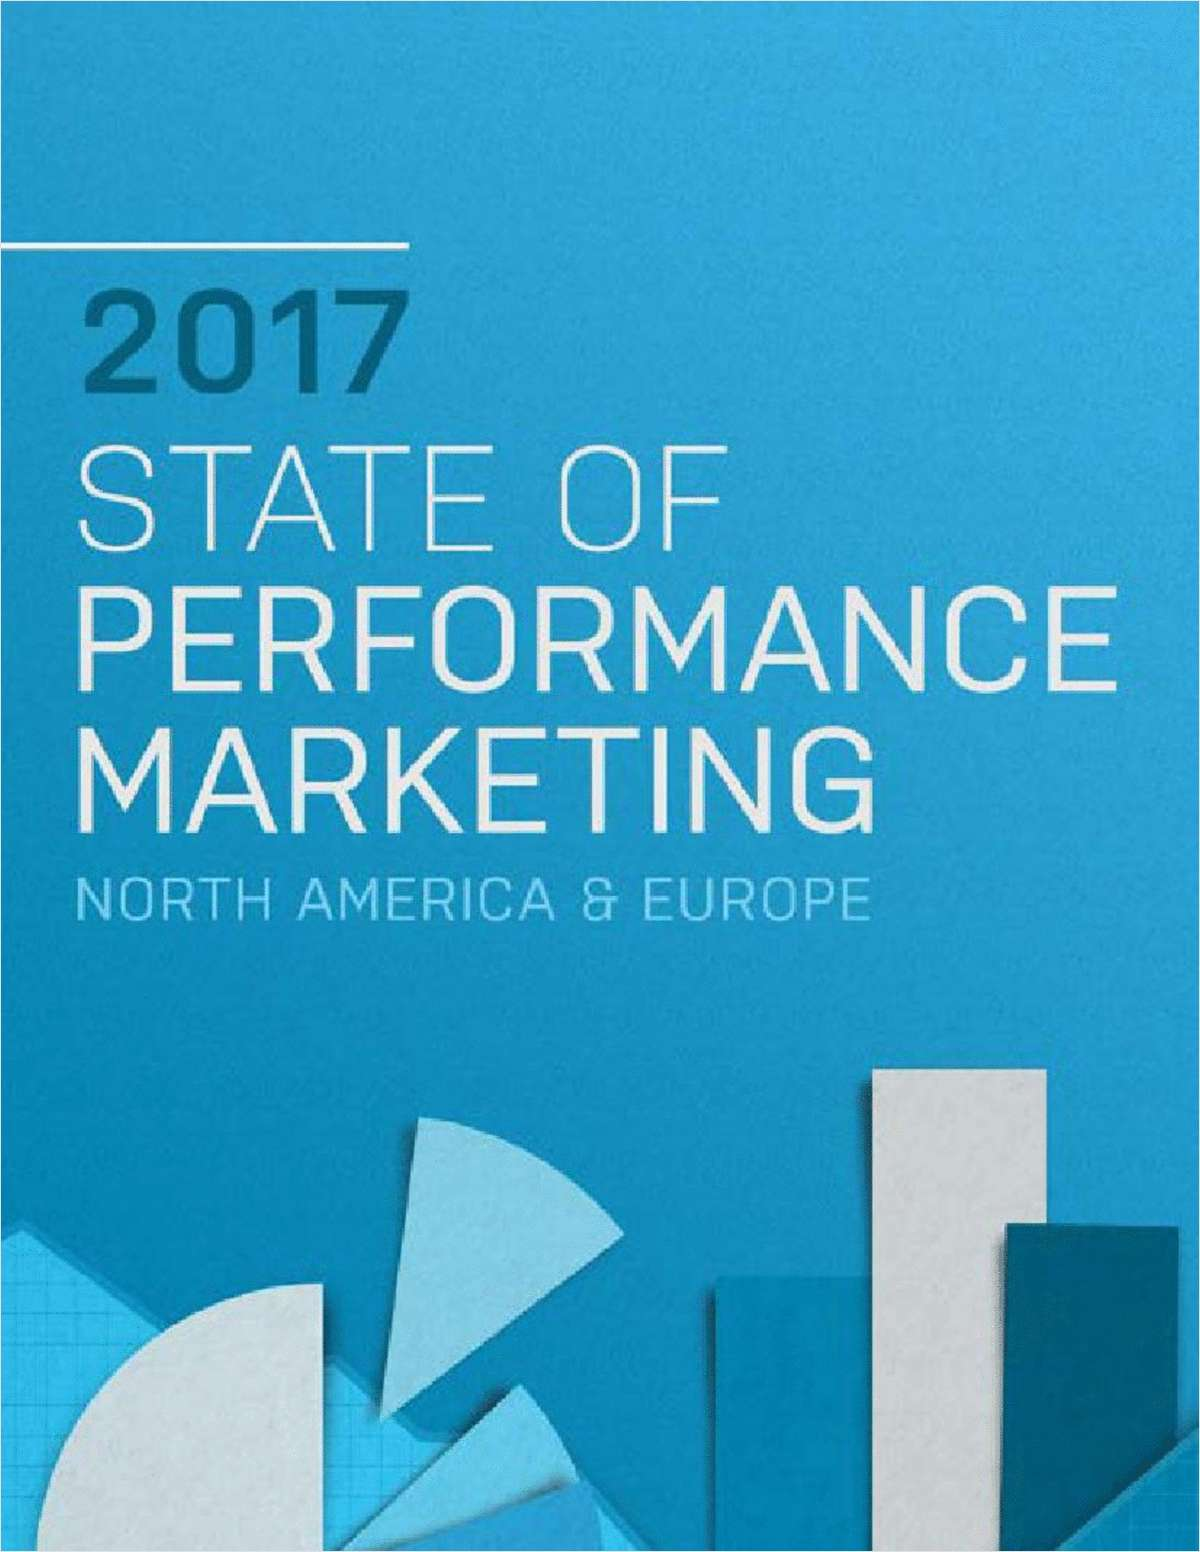 2017 State of Performance Marketing